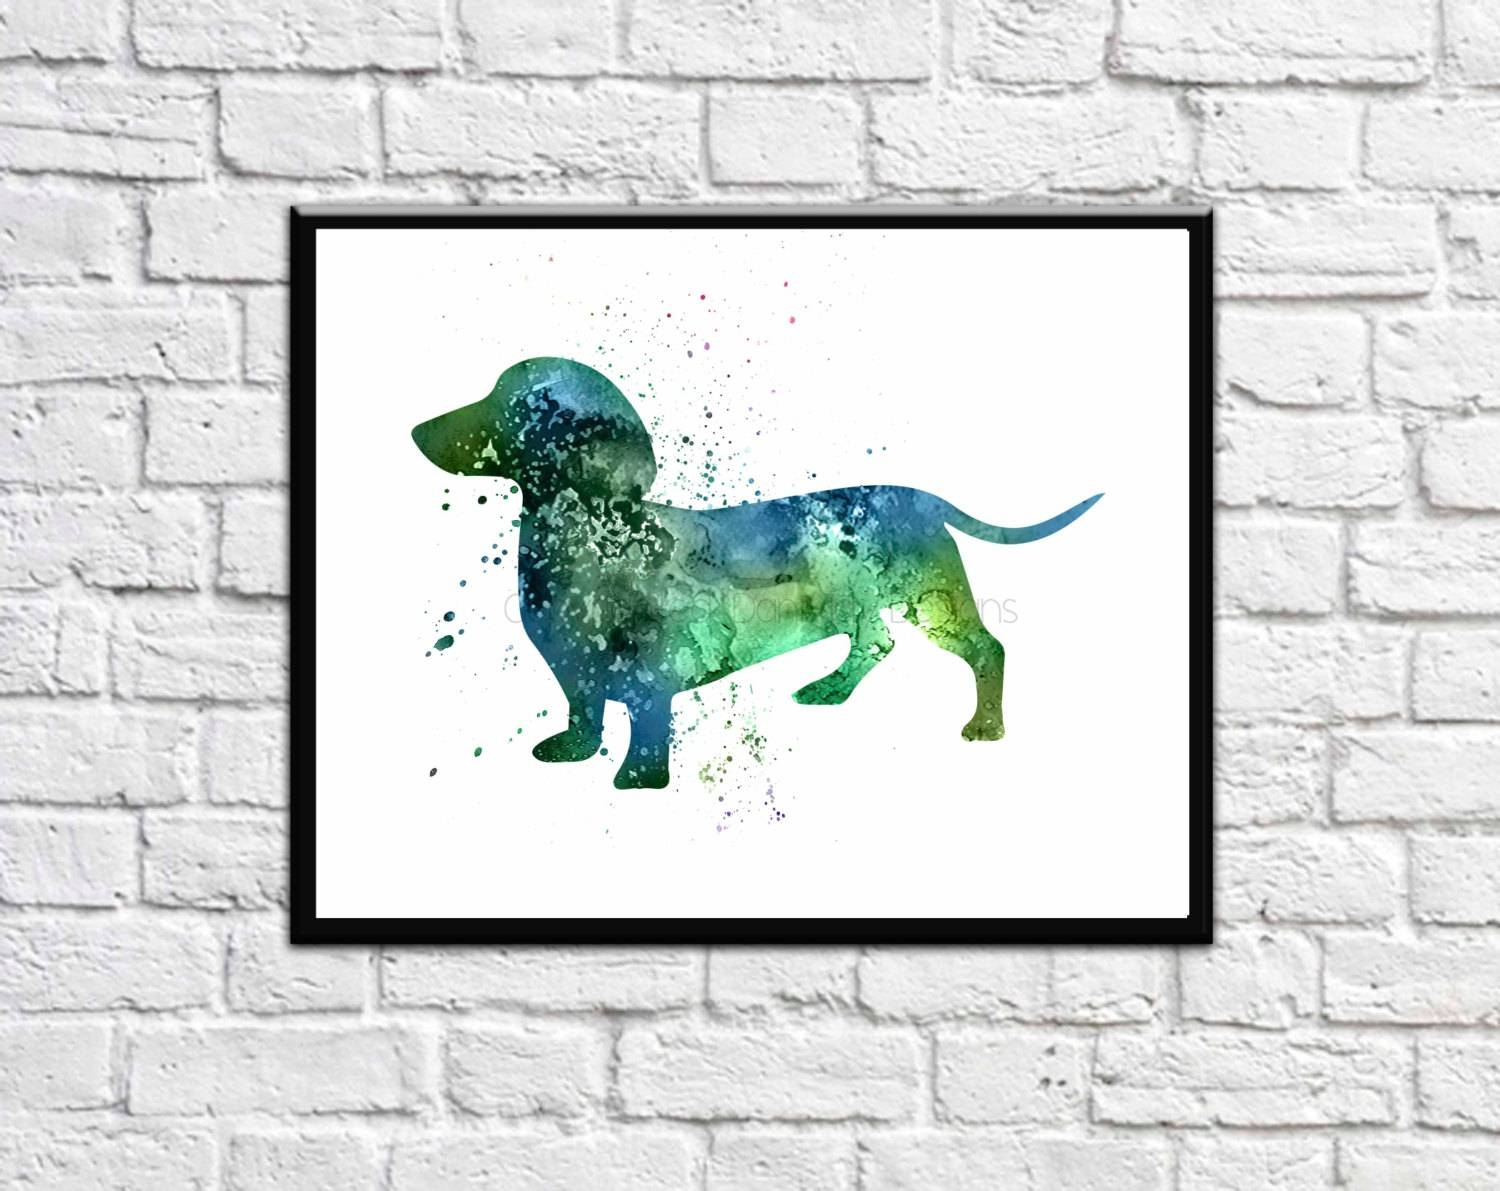 Dachshund Art Dachshund Gift Dachshund Wall Art Dachshund In Most Up To Date Dachshund Wall Art (View 6 of 22)